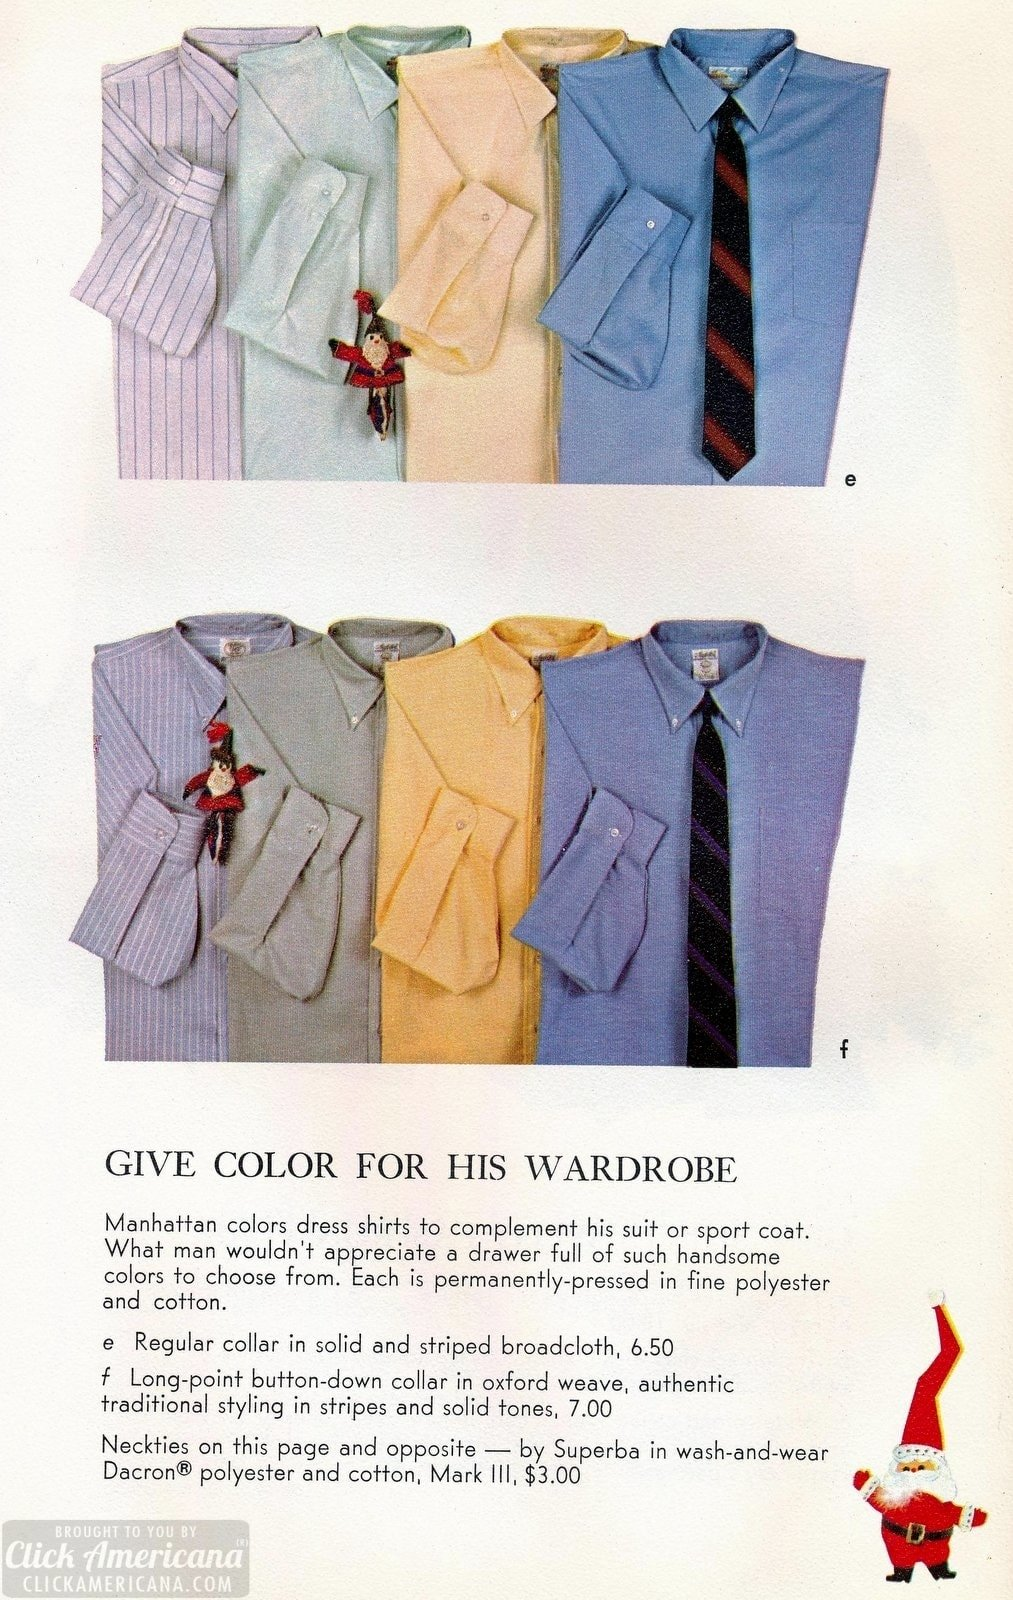 Vintage collared shirts for men in colors and striped broadcloth